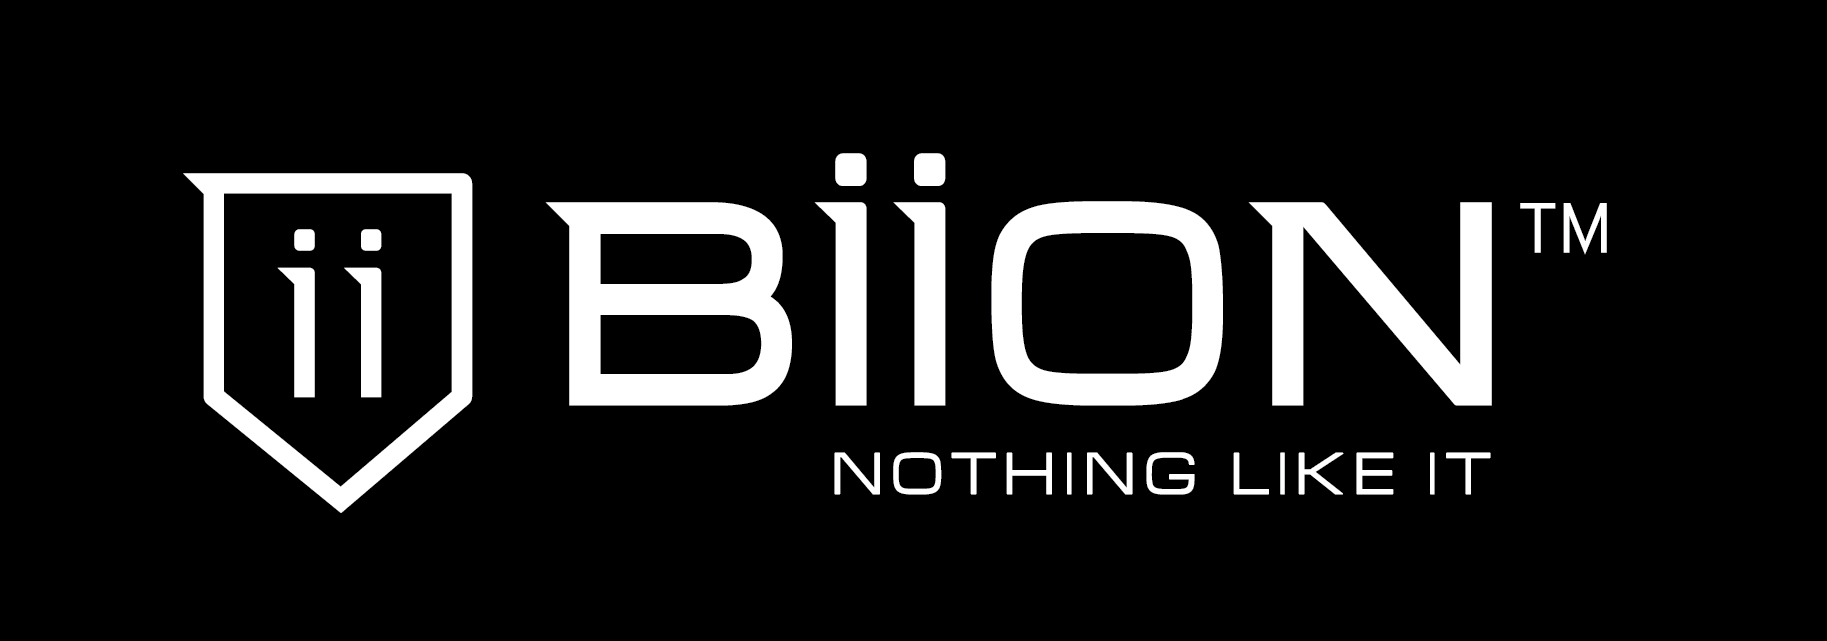 BIION_Logo_Horizontal-02_Edit-01_Black_White_Nothing_Like_it.jpg